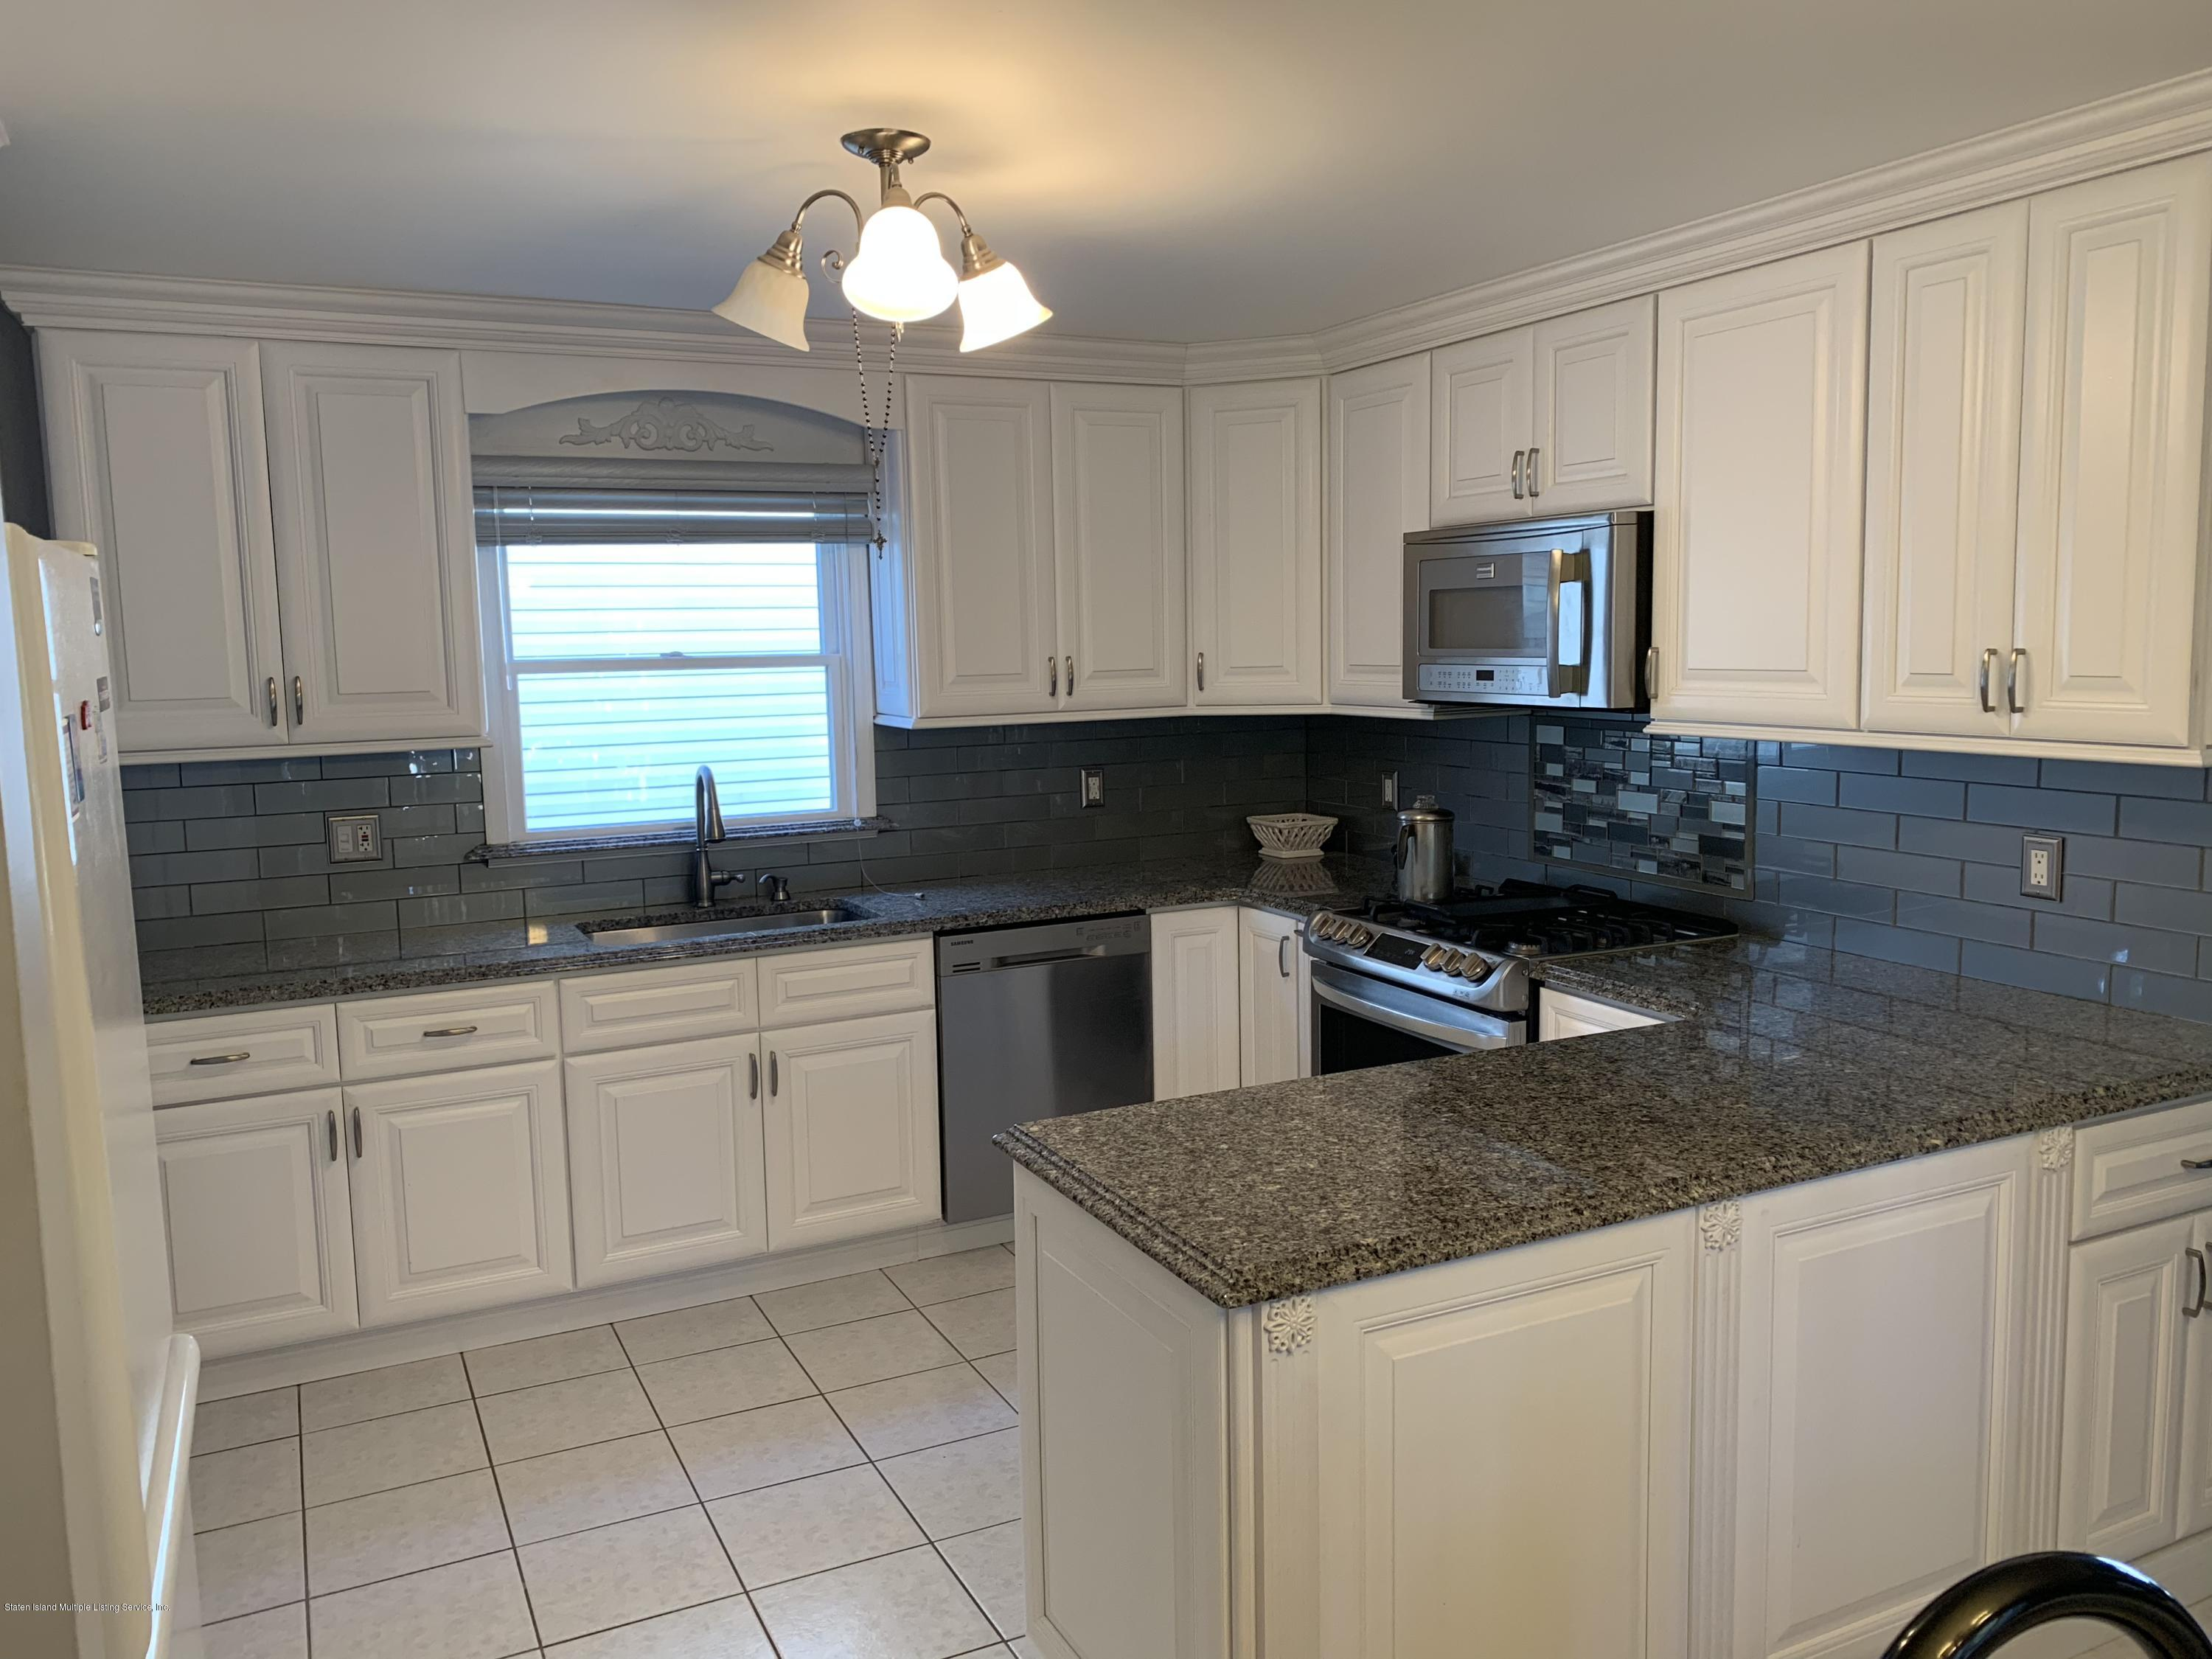 Two Family - Detached 96 Idaho Avenue  Staten Island, NY 10309, MLS-1127990-8